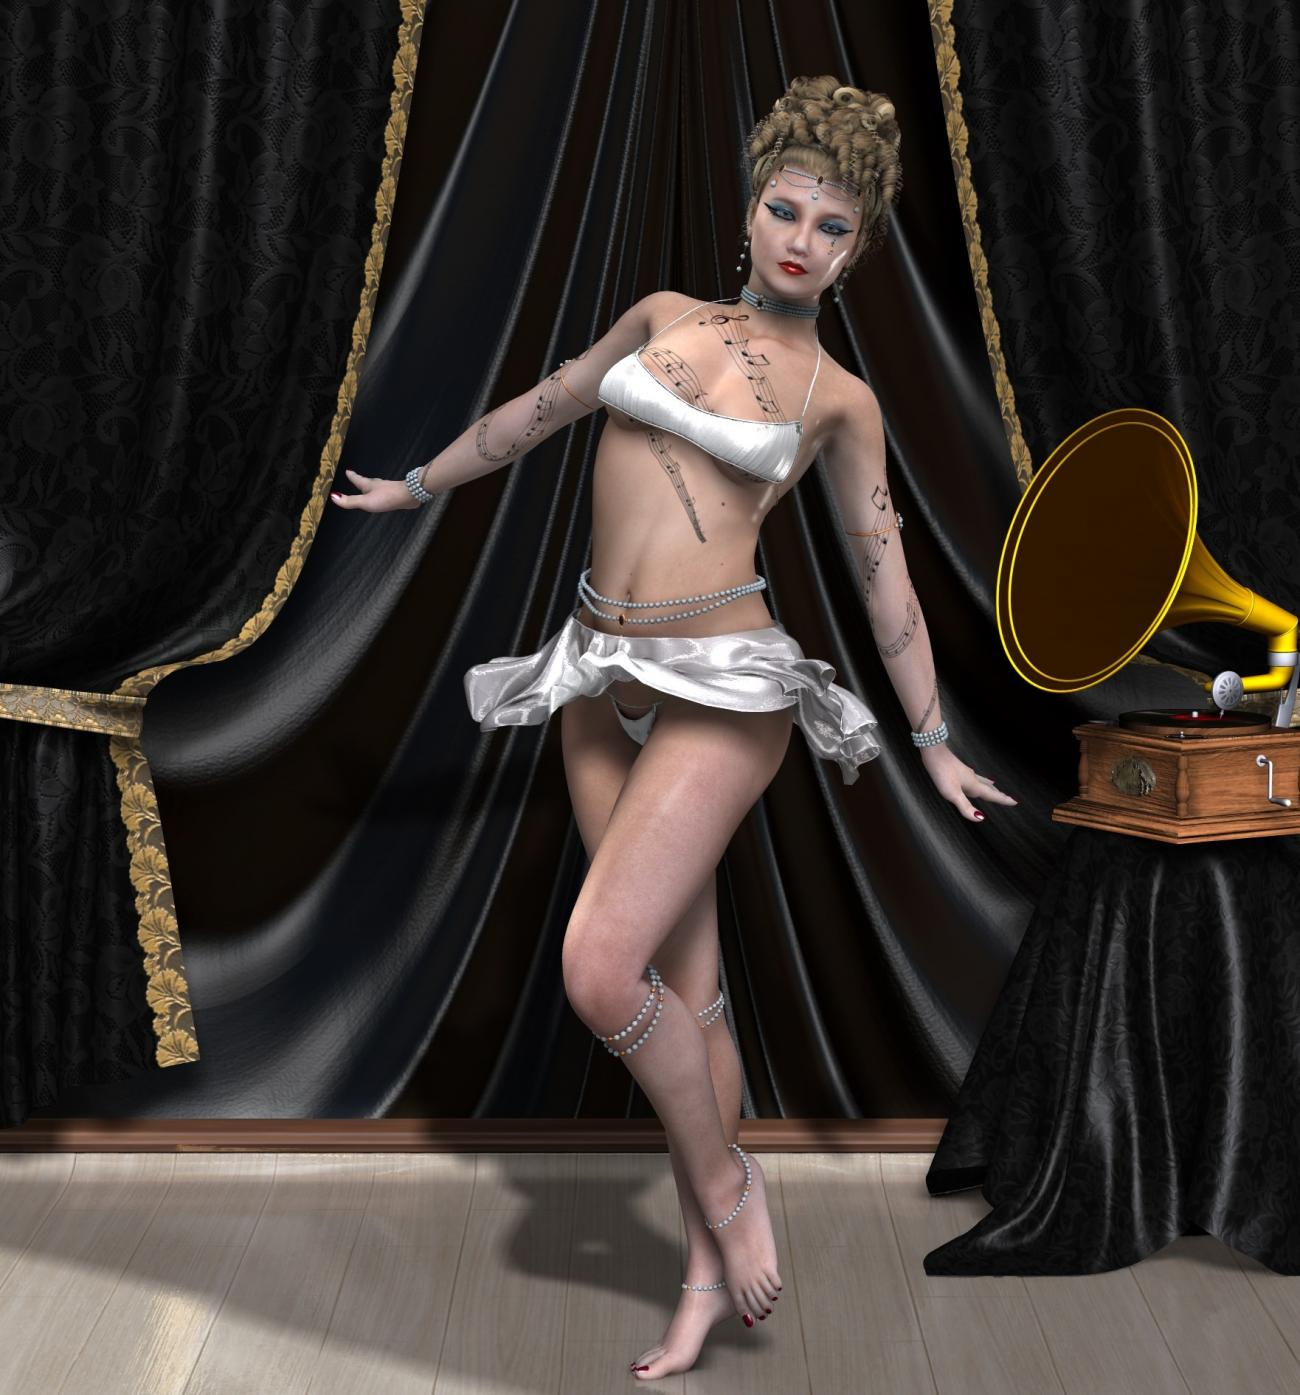 Musical for Tempesta3d and Lory